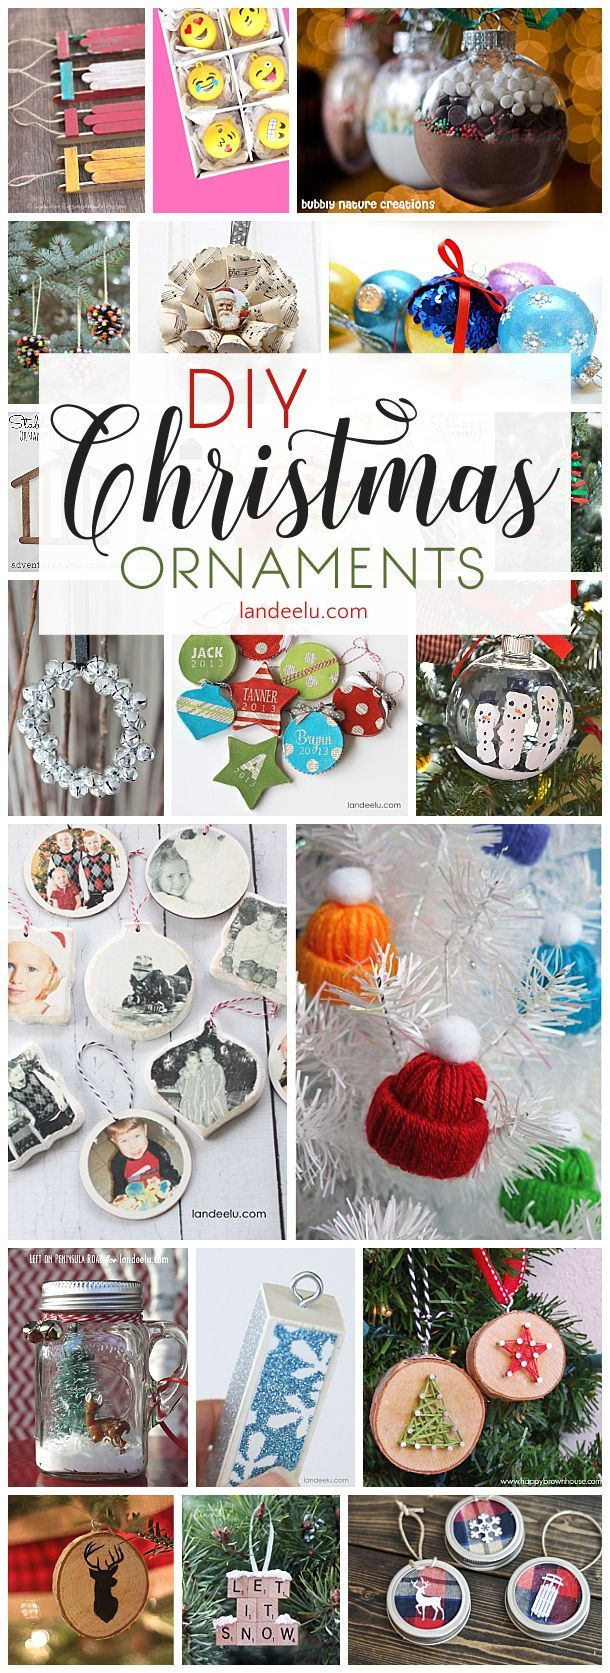 Have you seen these awesome christmas gifts - Best 25 Handmade Christmas Ideas On Pinterest Diy Christmas Gifts Handmade Christmas Gifts And Family Christmas Gifts